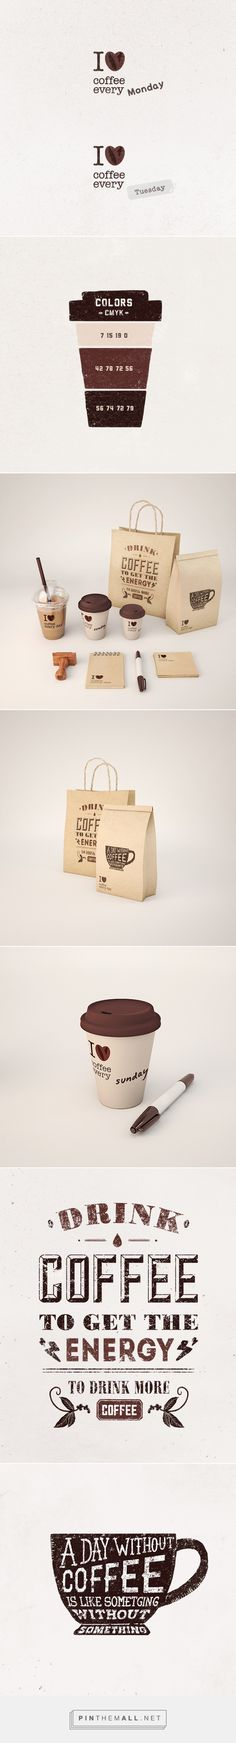 I Love coffee every day on Behance by Andrey Zhulidin curated by Packaging Diva PD. Simple yet compelling coffee packaging.